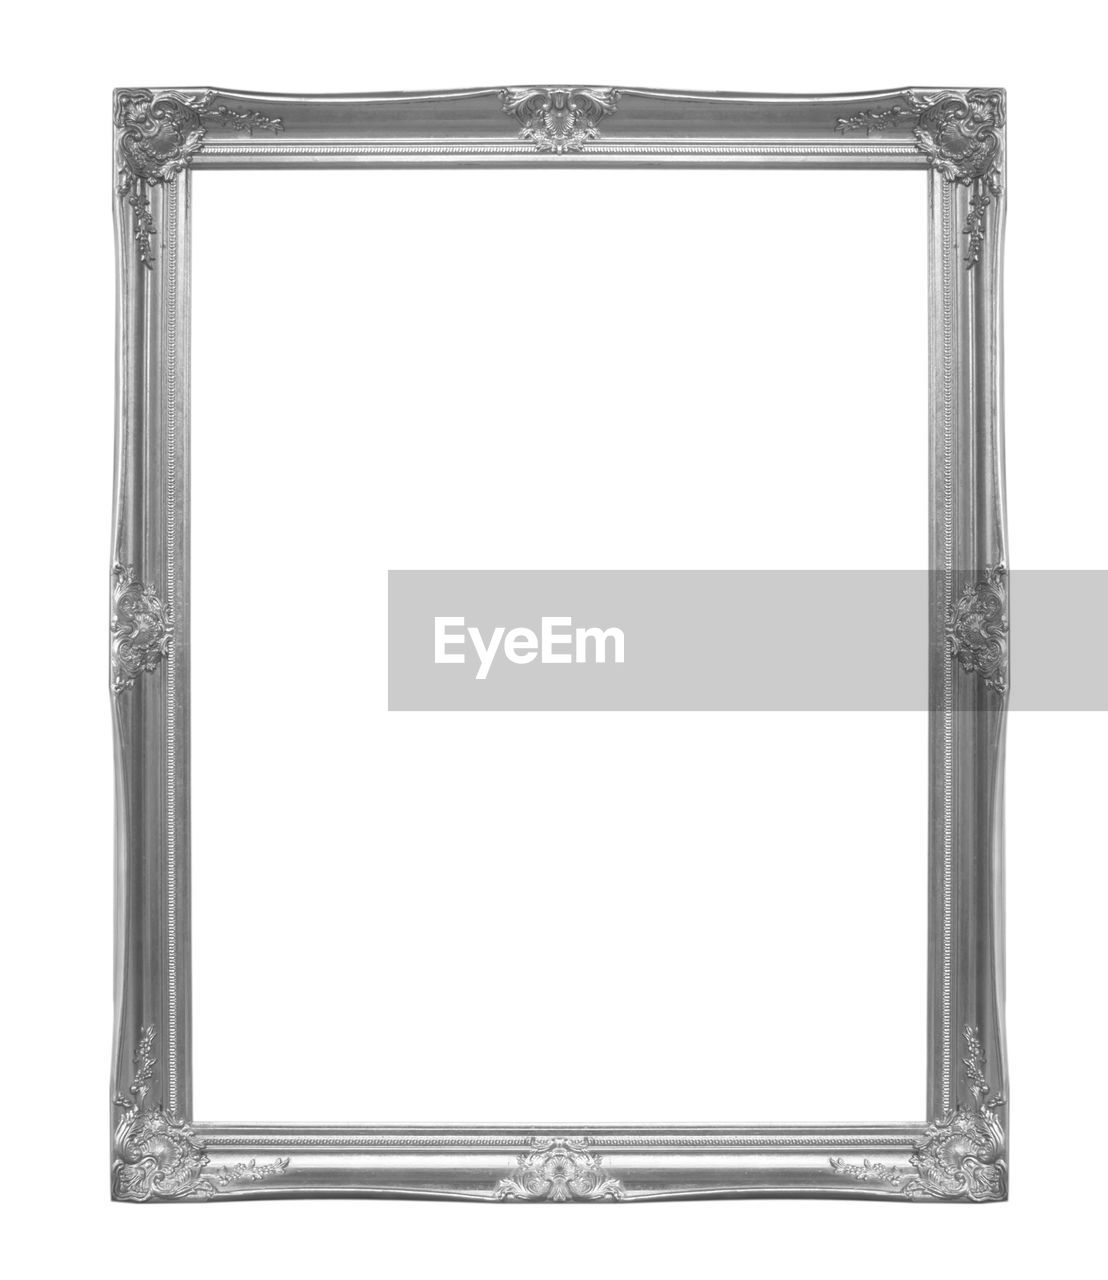 white background, cut out, picture frame, frame, design, copy space, blank, empty, shape, single object, no people, studio shot, retro styled, rectangle, art and craft, pattern, metal, old, close-up, antique, silver colored, ornate, at the edge of